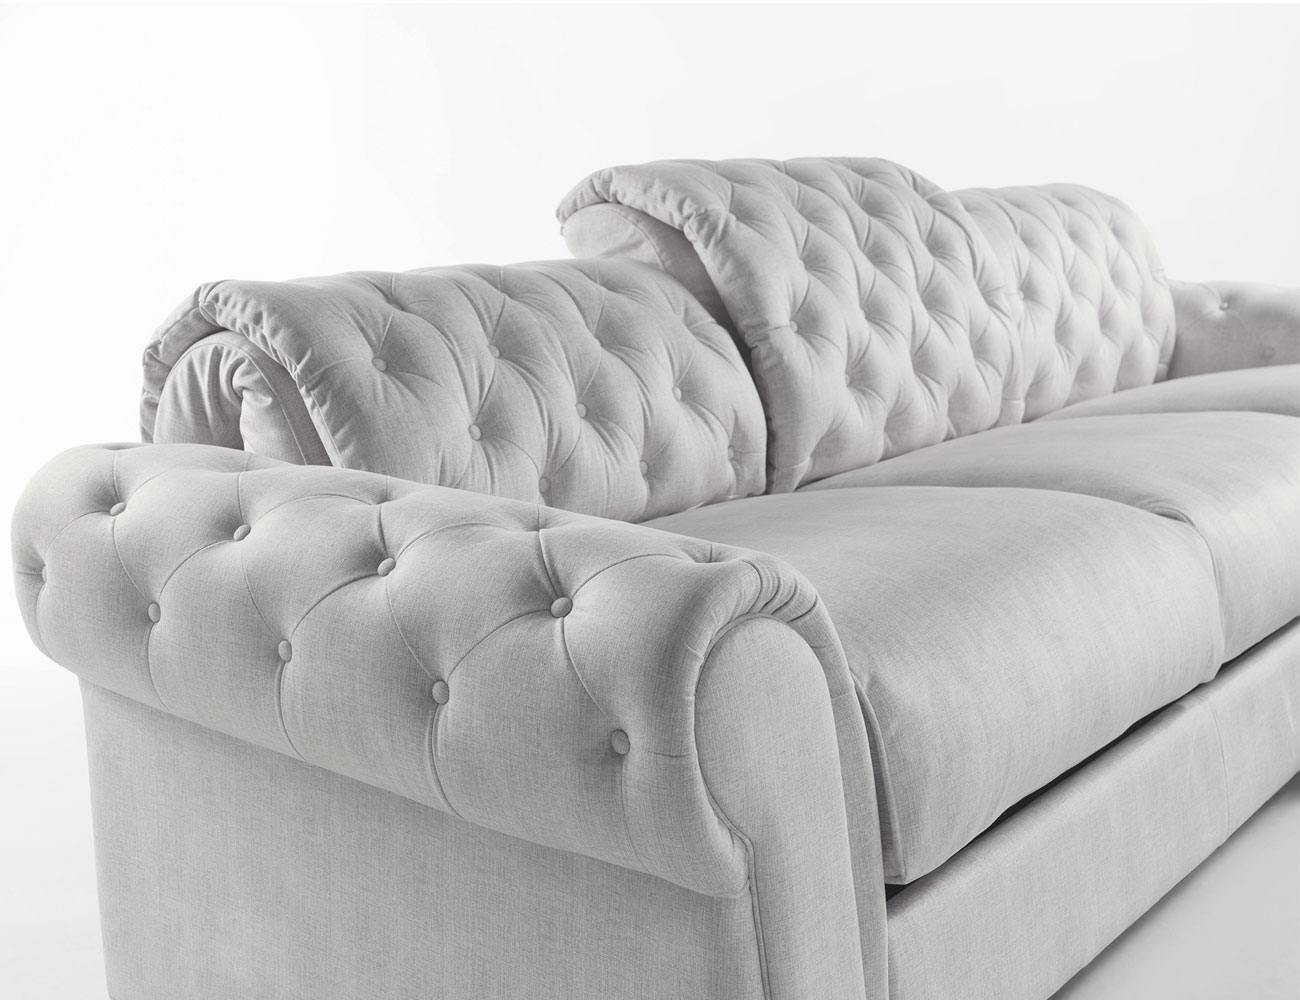 Sofa chaiselongue gran lujo decorativo capitone blanco tela 120